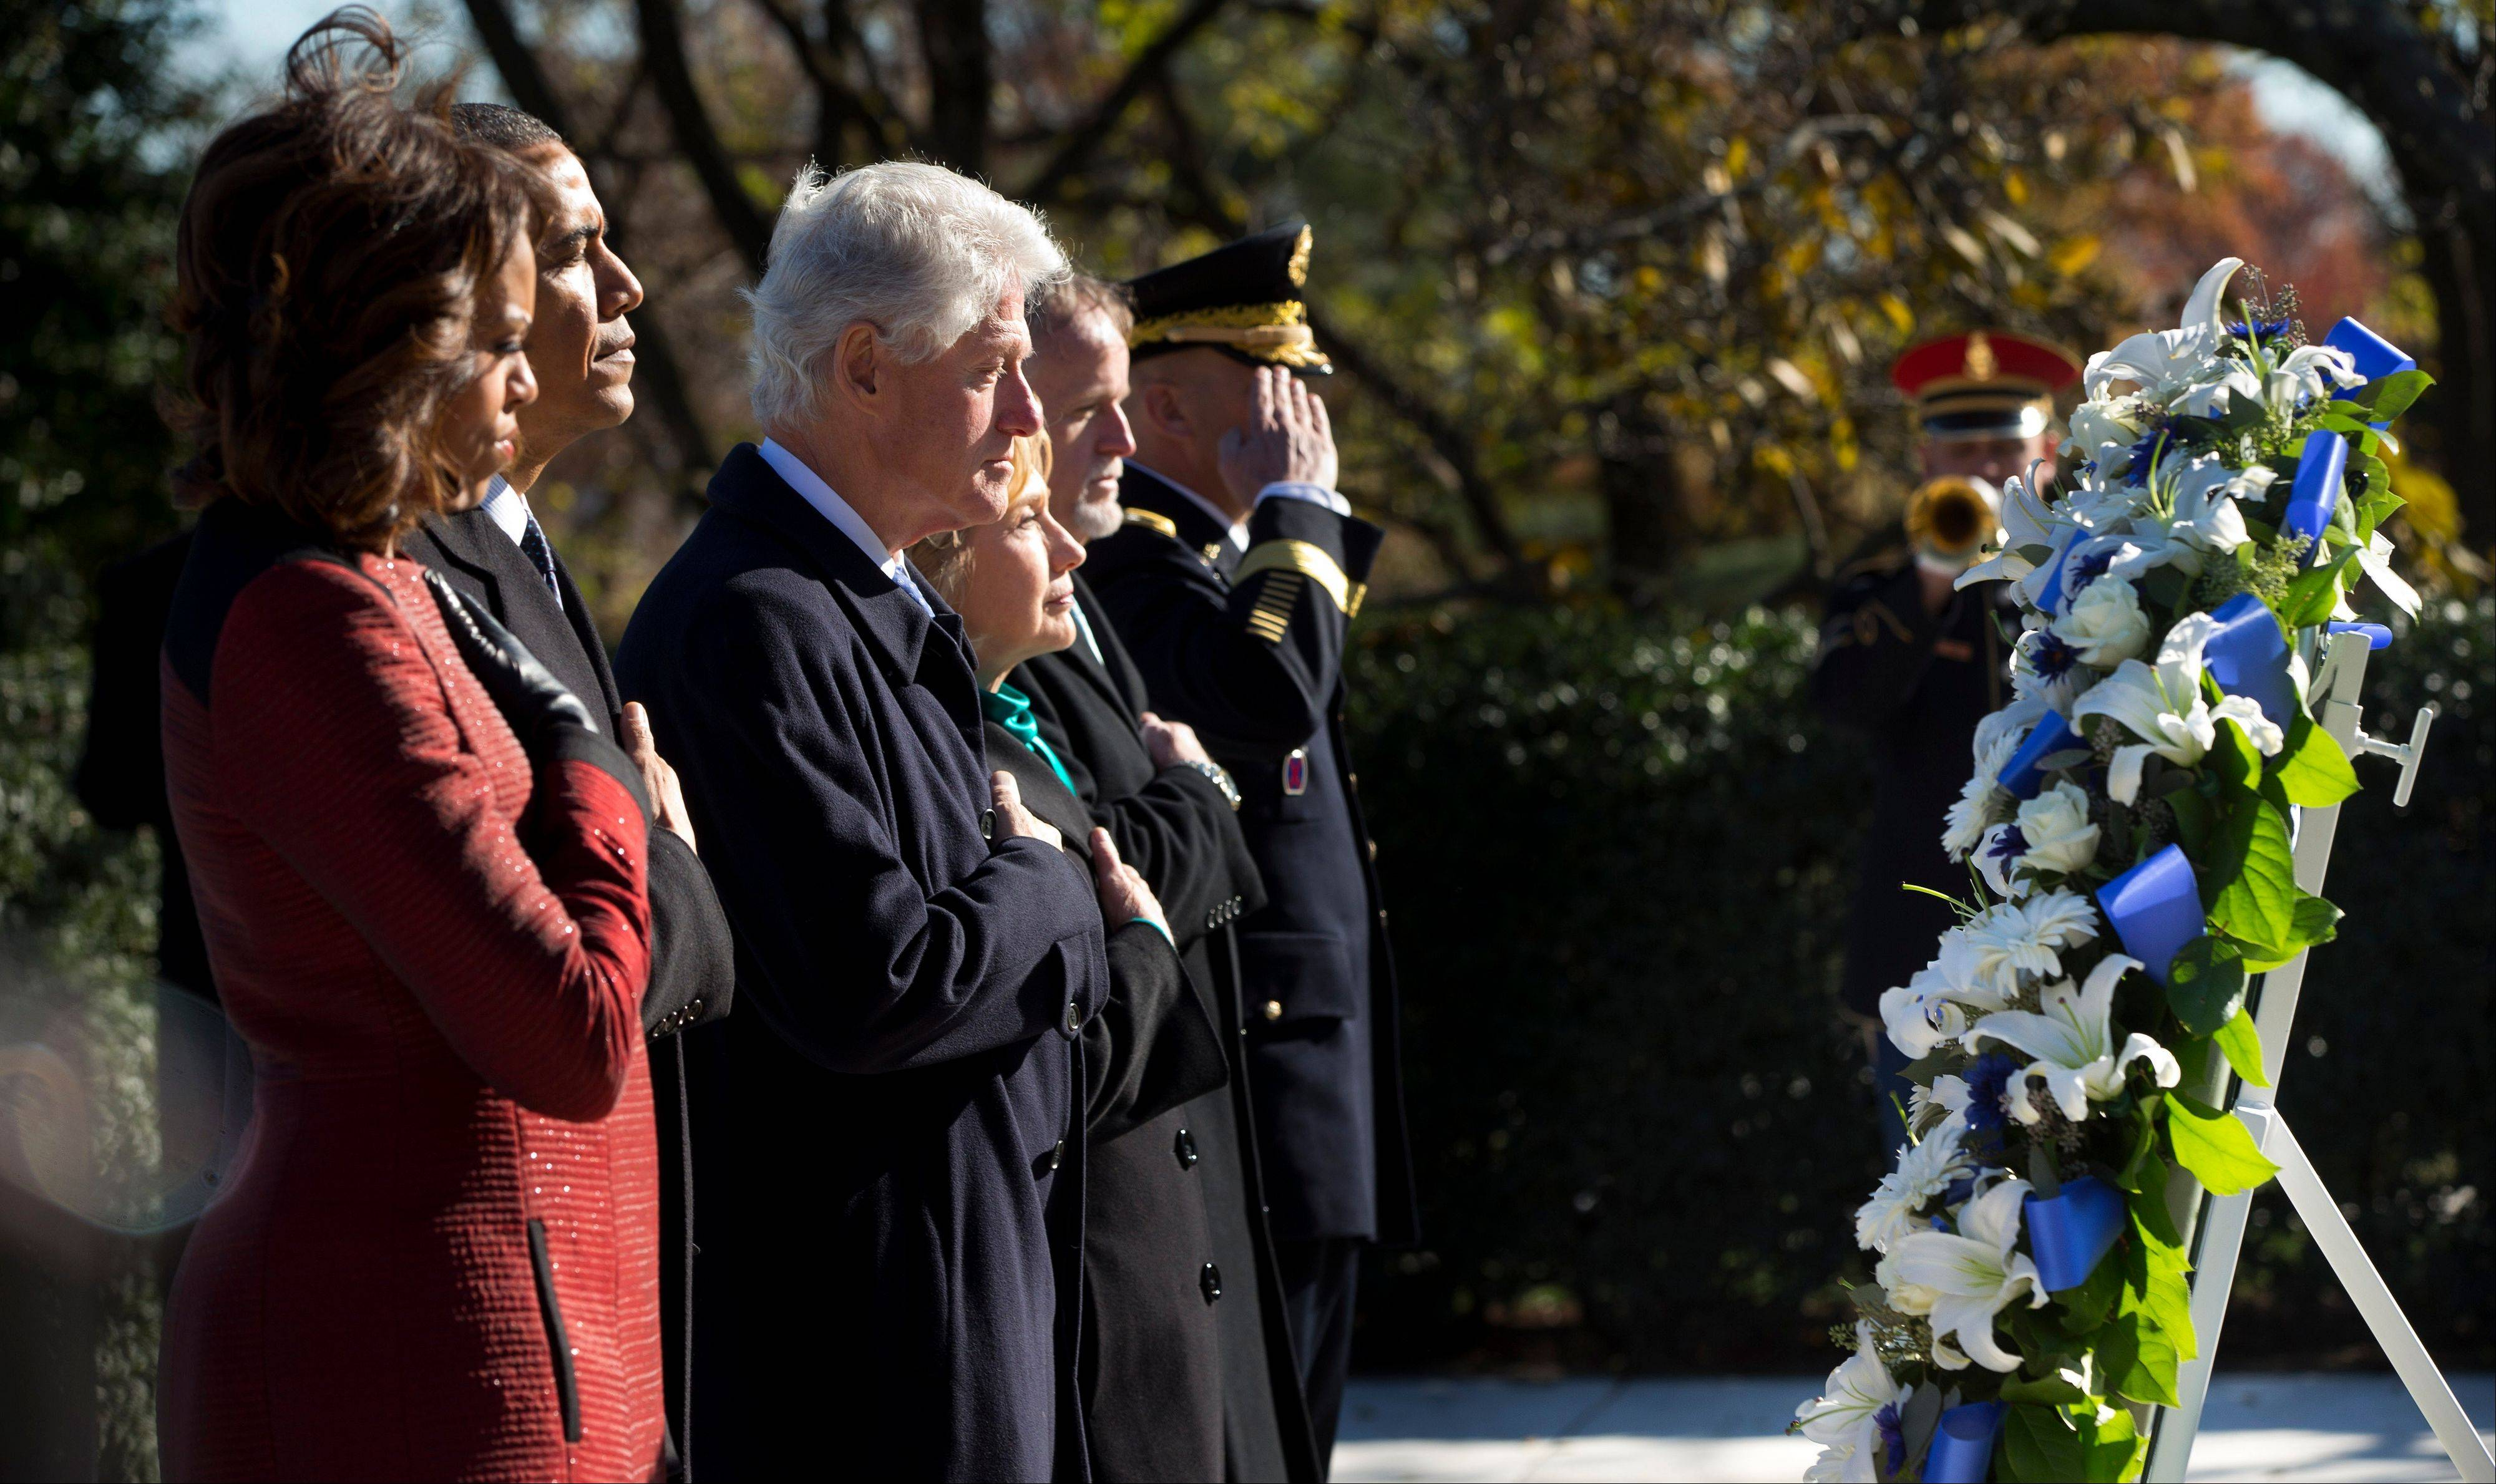 President Barack Obama, first lady Michelle Obama, former President Bill Clinton and his wife, former Secretary of State Hillary Rodham Clinton, pause during a wreath laying ceremony in honor of President John F. Kennedy, Wednesday, Nov. 20, 2013, at the JFK gravesite at Arlington National Cemetery in Arlington, Va. Friday will mark the 50th anniversary of the JFK assassination.